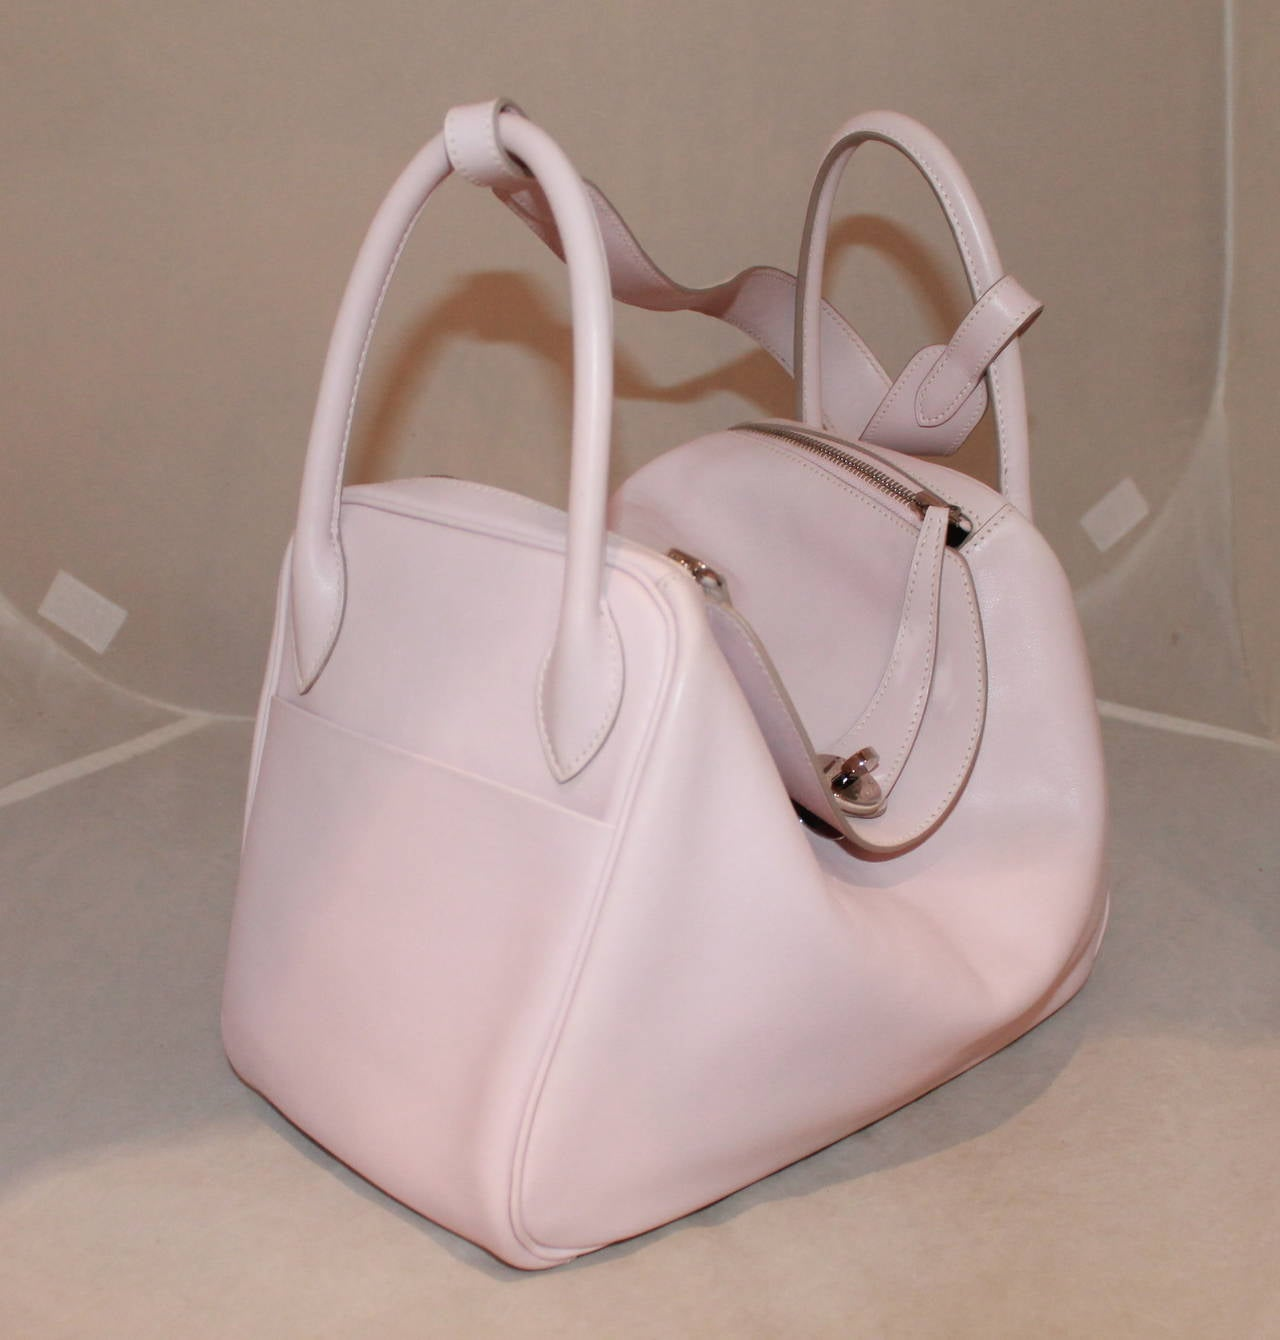 """Hermes Rose Dragee 30cm Lindy Veau Swift Handbag - circa 2007. This bag is in impeccable condition and comes with the box & duster.  Measurements: Length- 8"""" Width- 12"""" Depth- 6"""" Handle Drop- 12.5"""""""